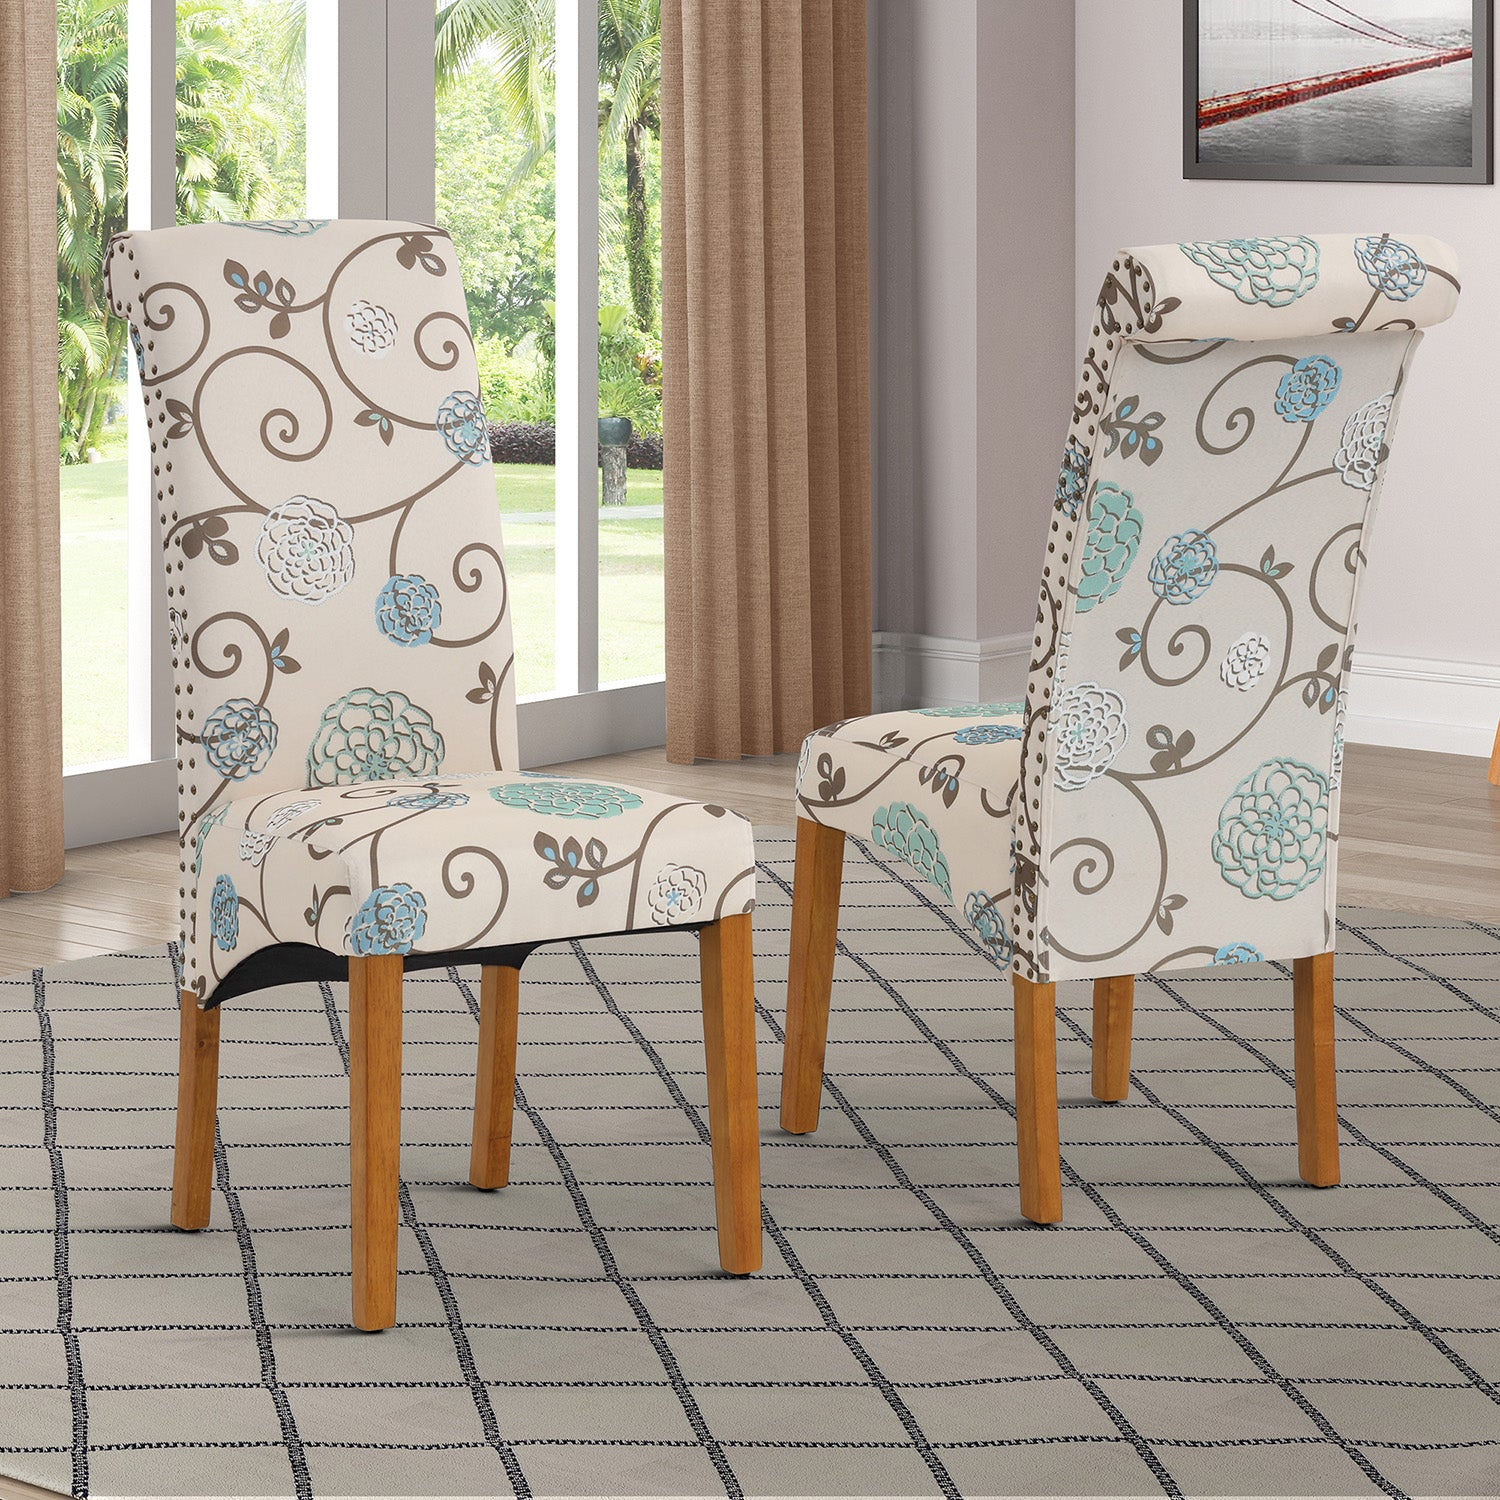 Sienna Dining Chair Set Fabric Padded Side Chair with Solid Wood Legs Nailed Trim Living Room BH486200